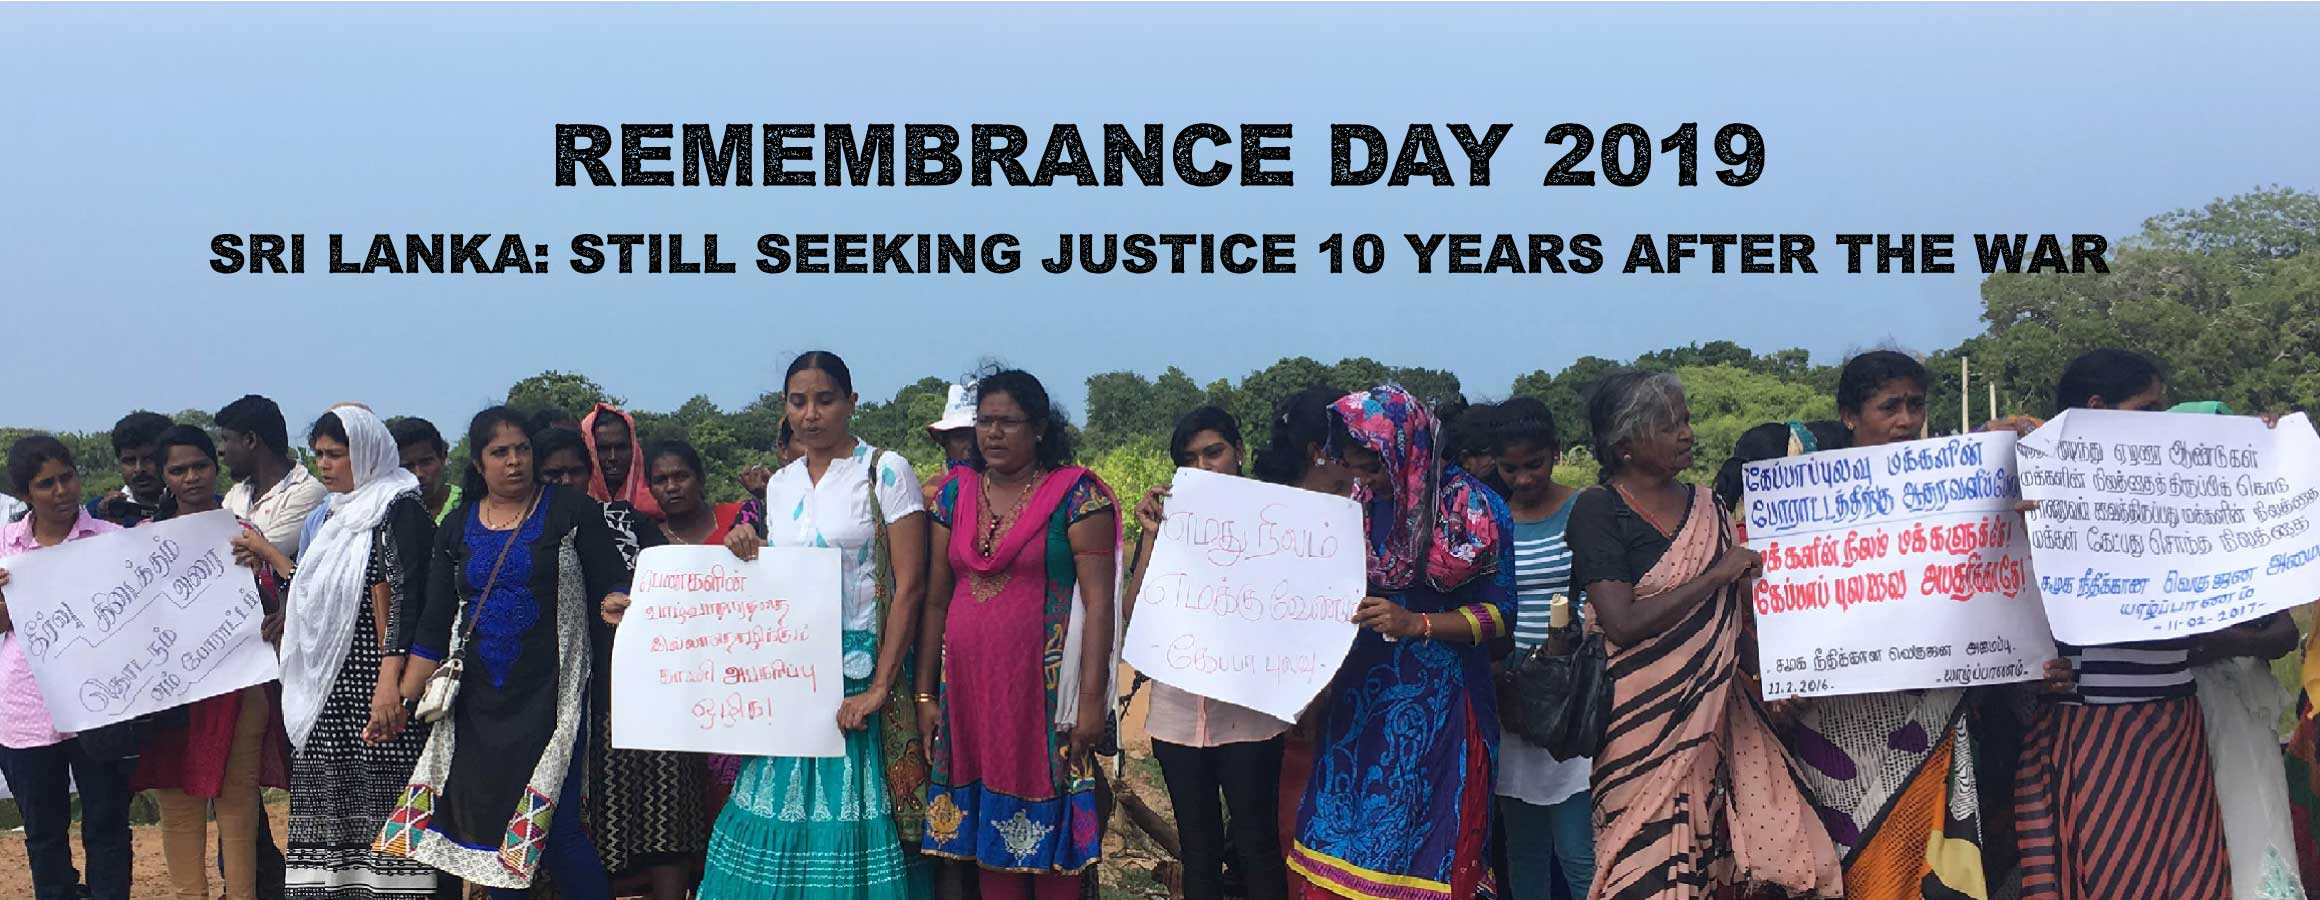 Image: Inter-Faith Women's Group in solidarity protest with Pilavu residents, February 2017. Copyright: Tamil Guardian